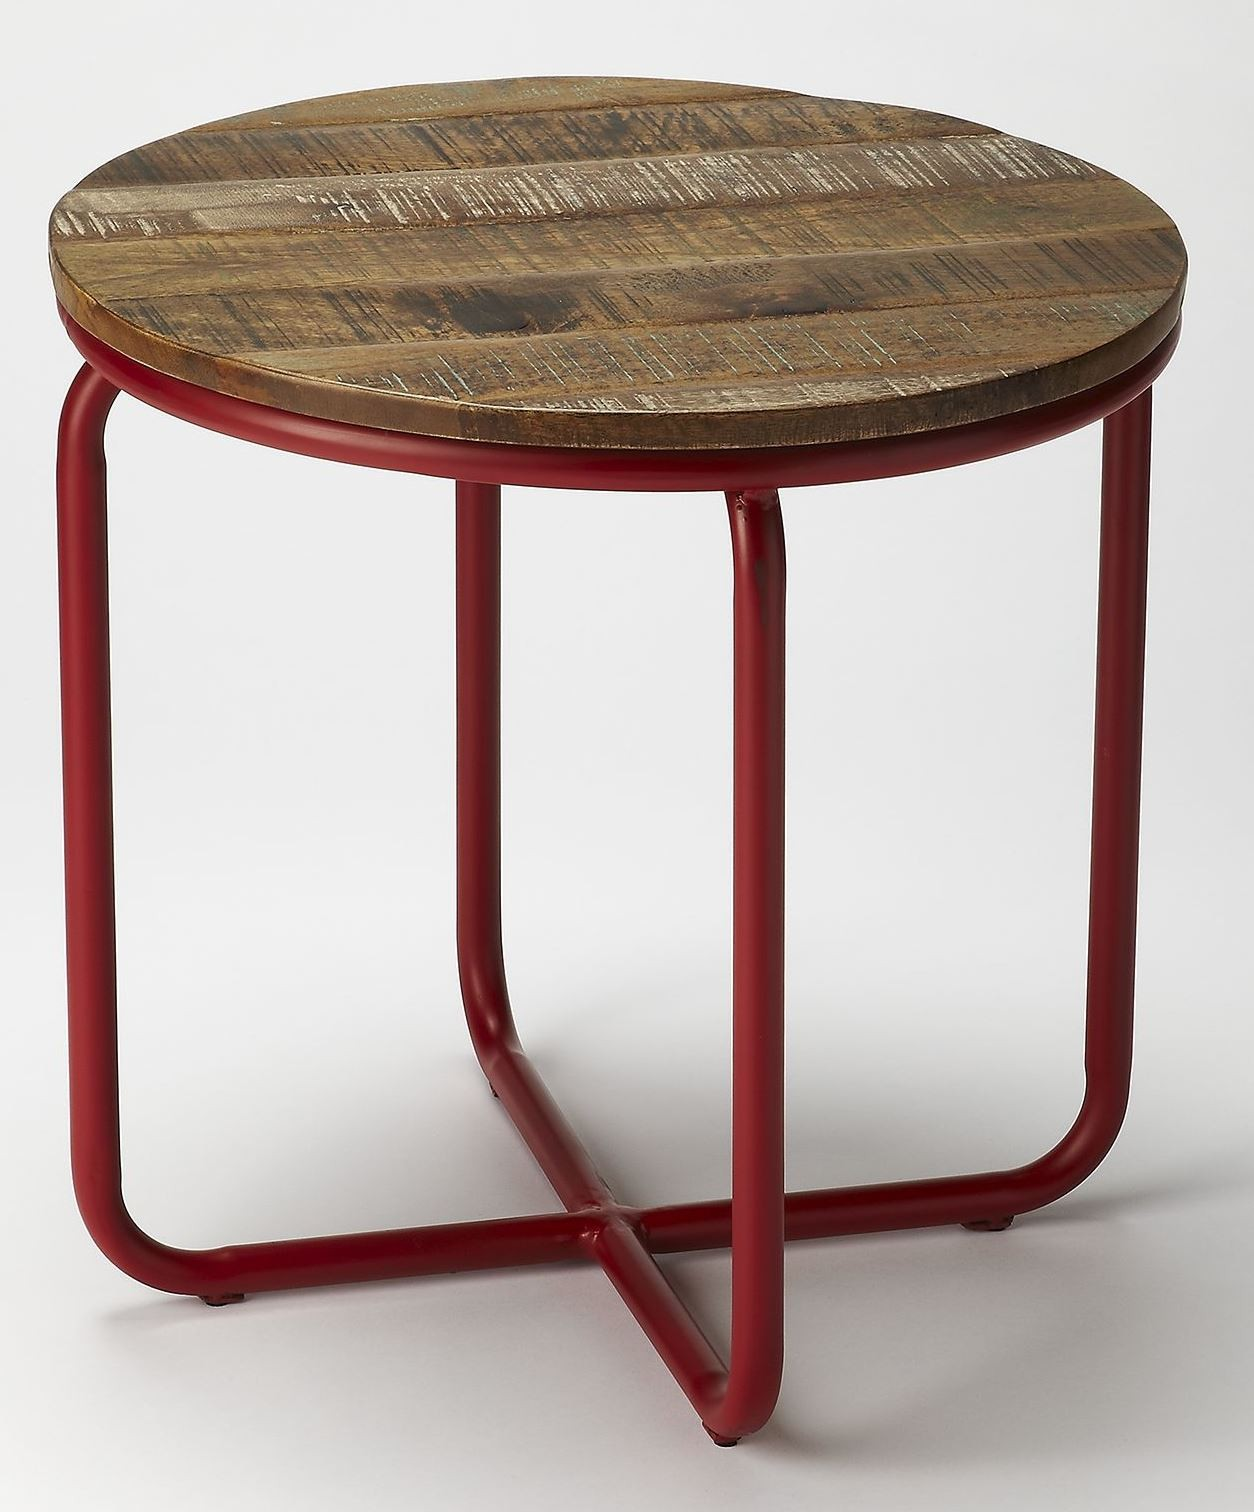 Industrial Chic Bunching Table From Butler 5159330